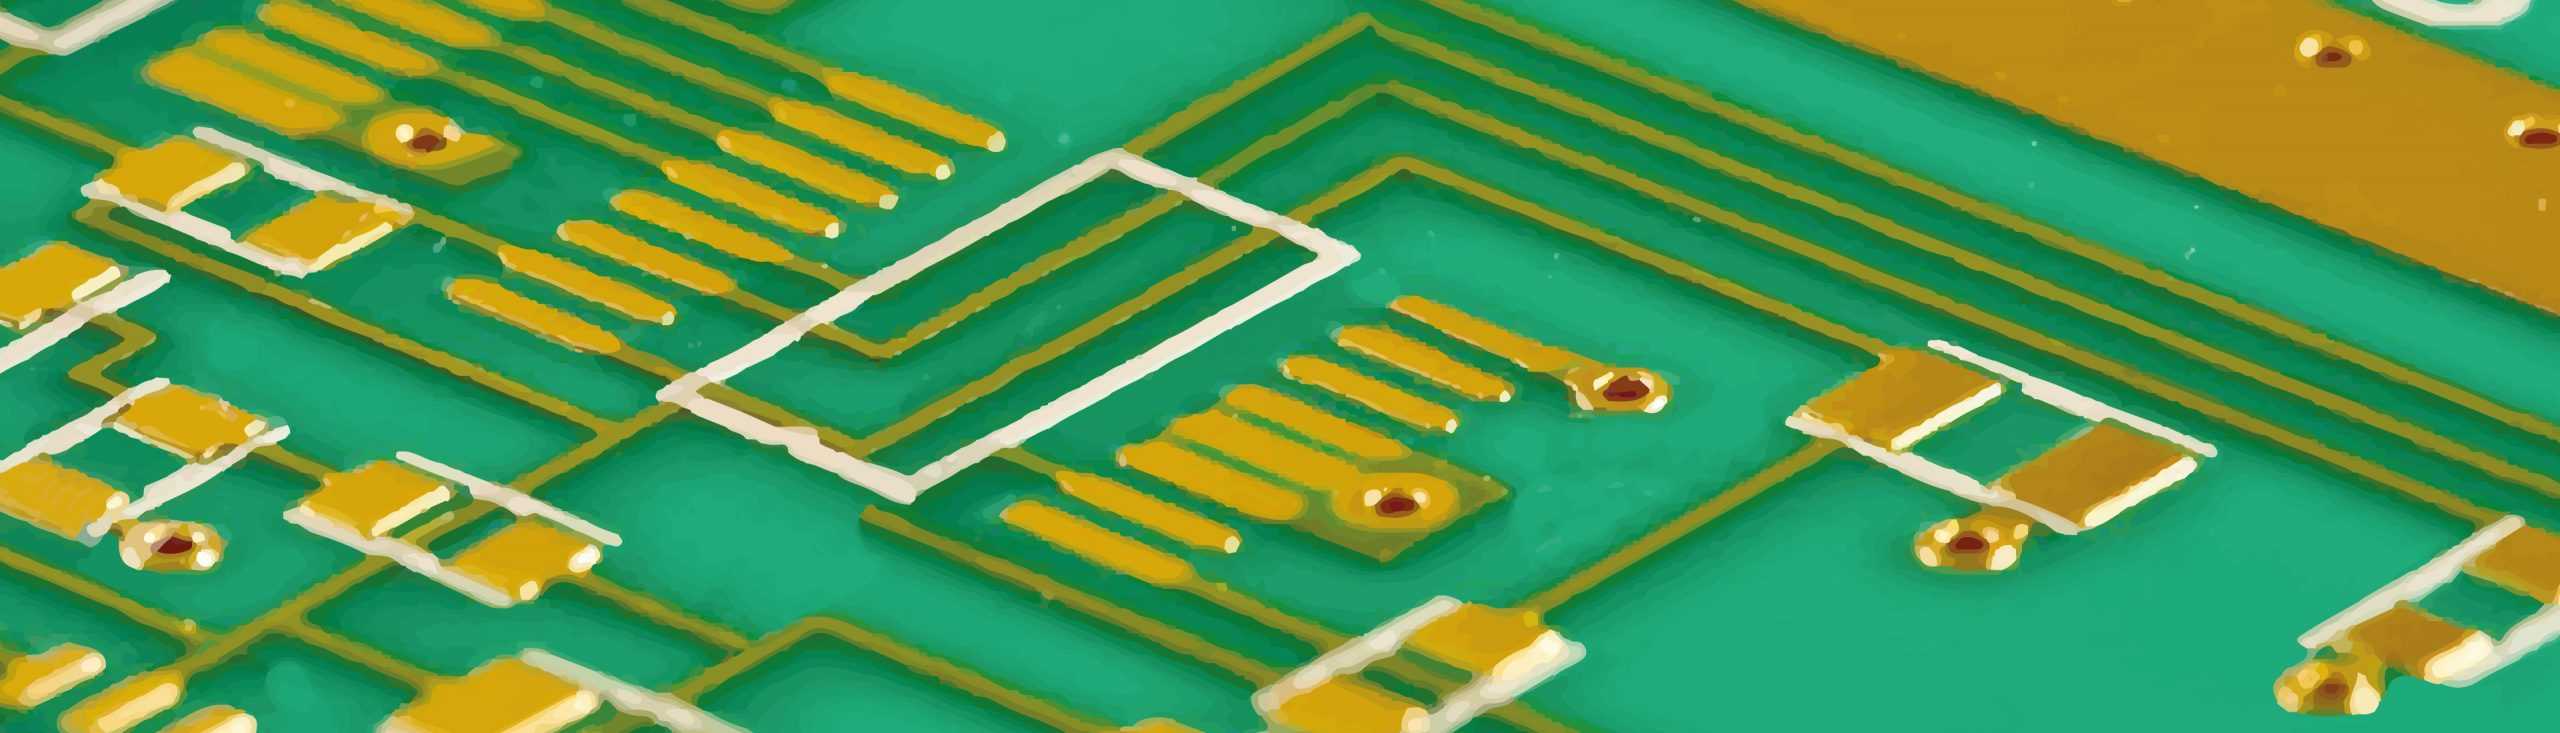 PCB Design for High Frequencies: Start with the Finish